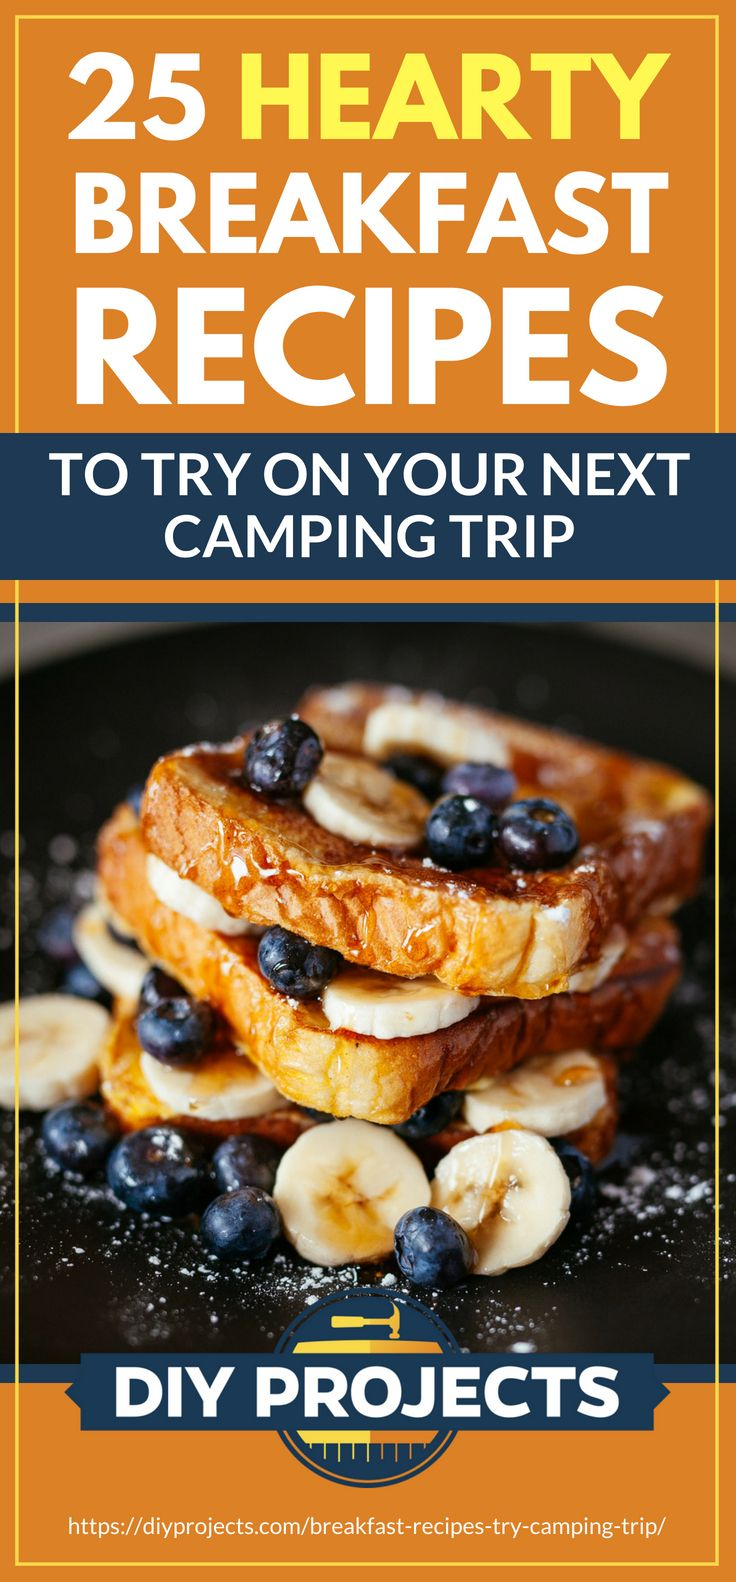 Pinterest Placard | 25 Hearty Breakfast Recipes To Try On Your Next Camping Trip